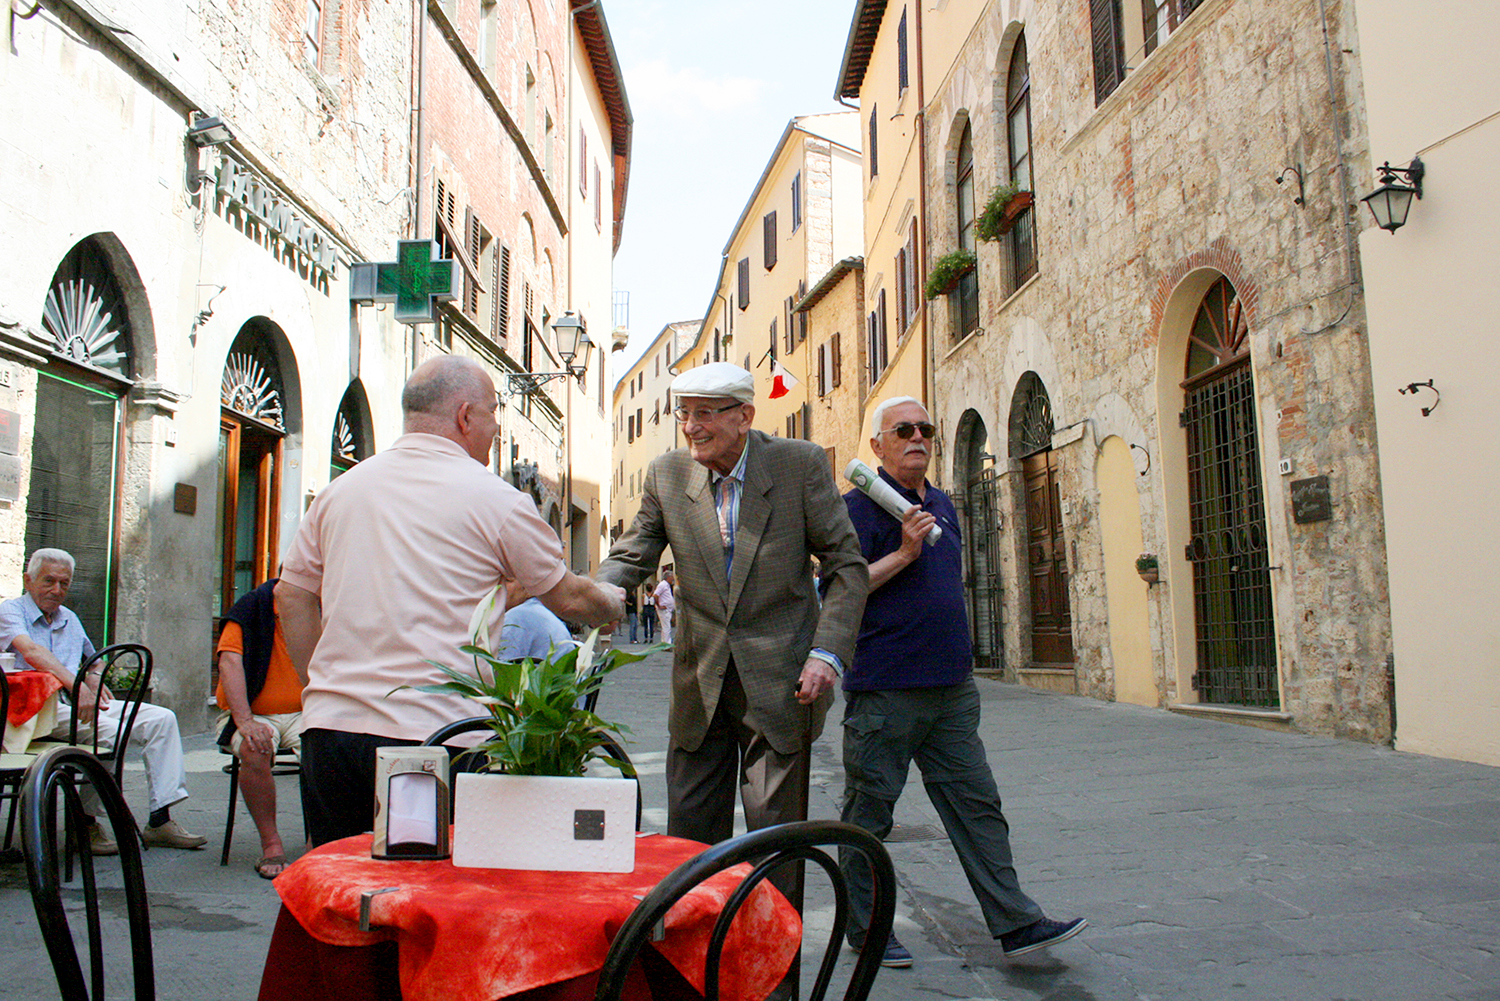 Top 6 Places To Visit in Tuscany During Spring